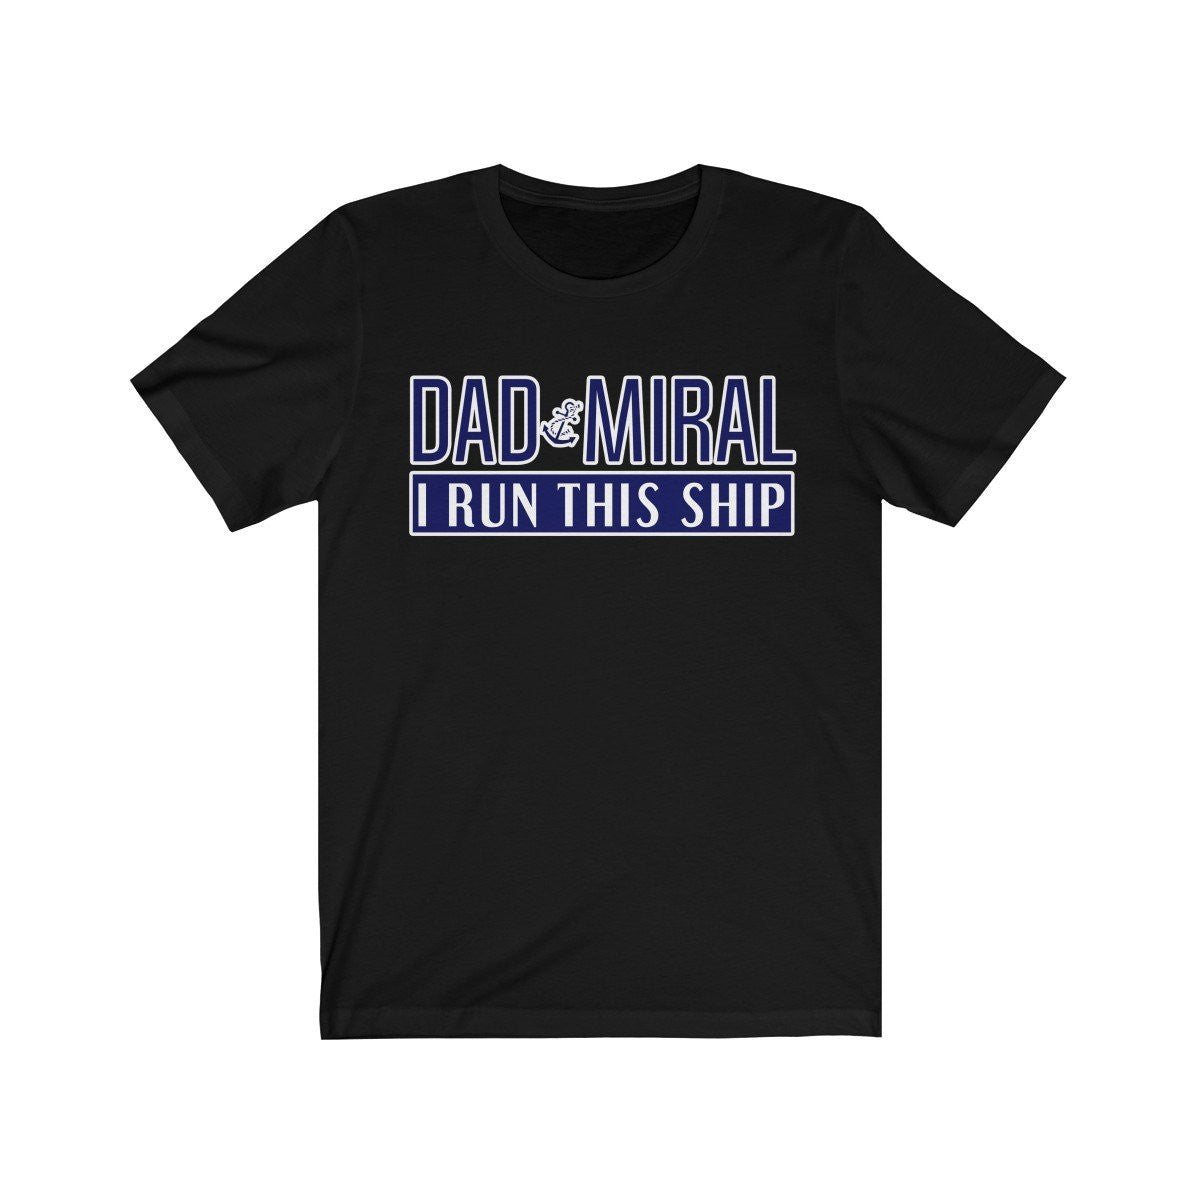 Dad-miral  Men's Tee T-Shirt